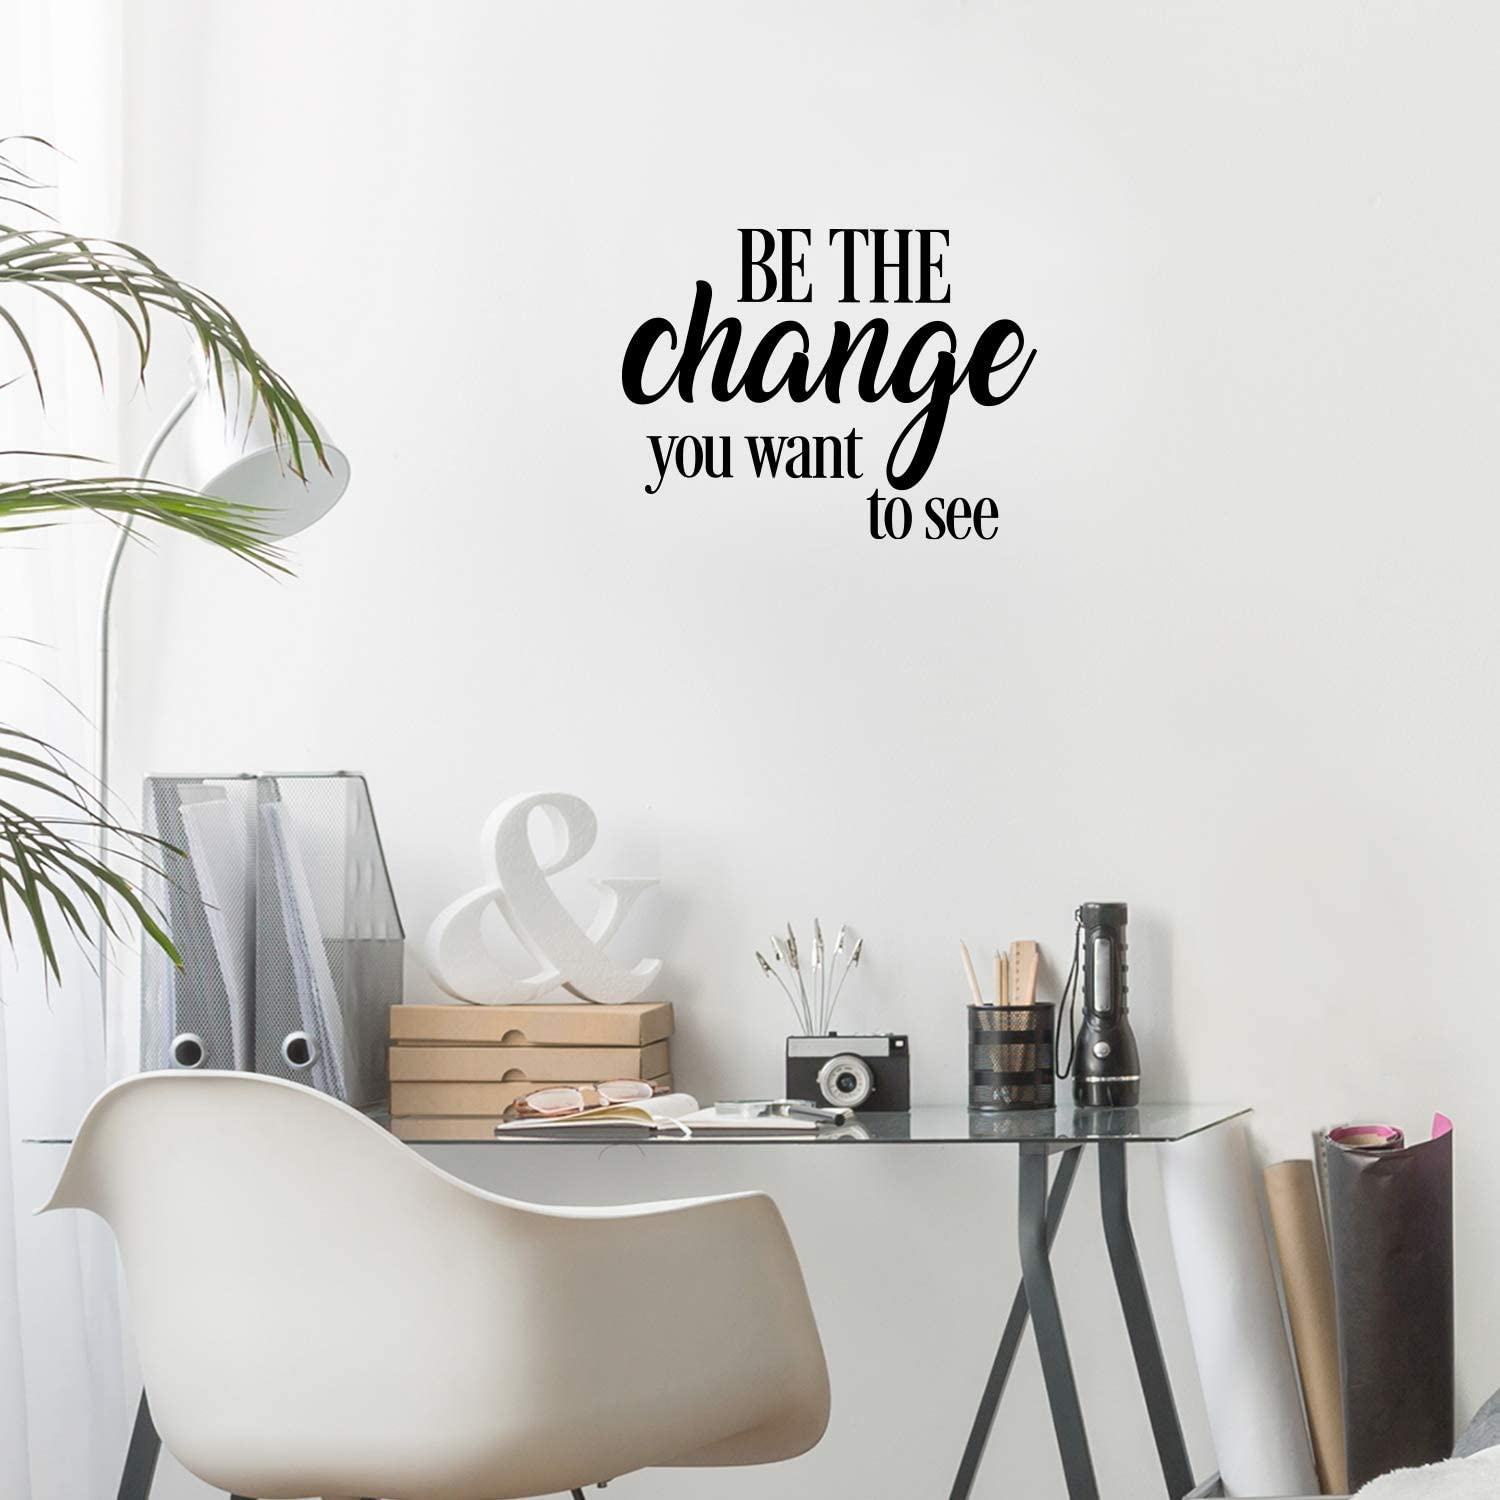 """Vinyl Wall Art Decal - Be The Change You Want to See - 17"""" x 23"""" - Inspirational Positive Life Quote for Home Bedroom Living Room Office Workplace Classroom School Indoor Decoration"""